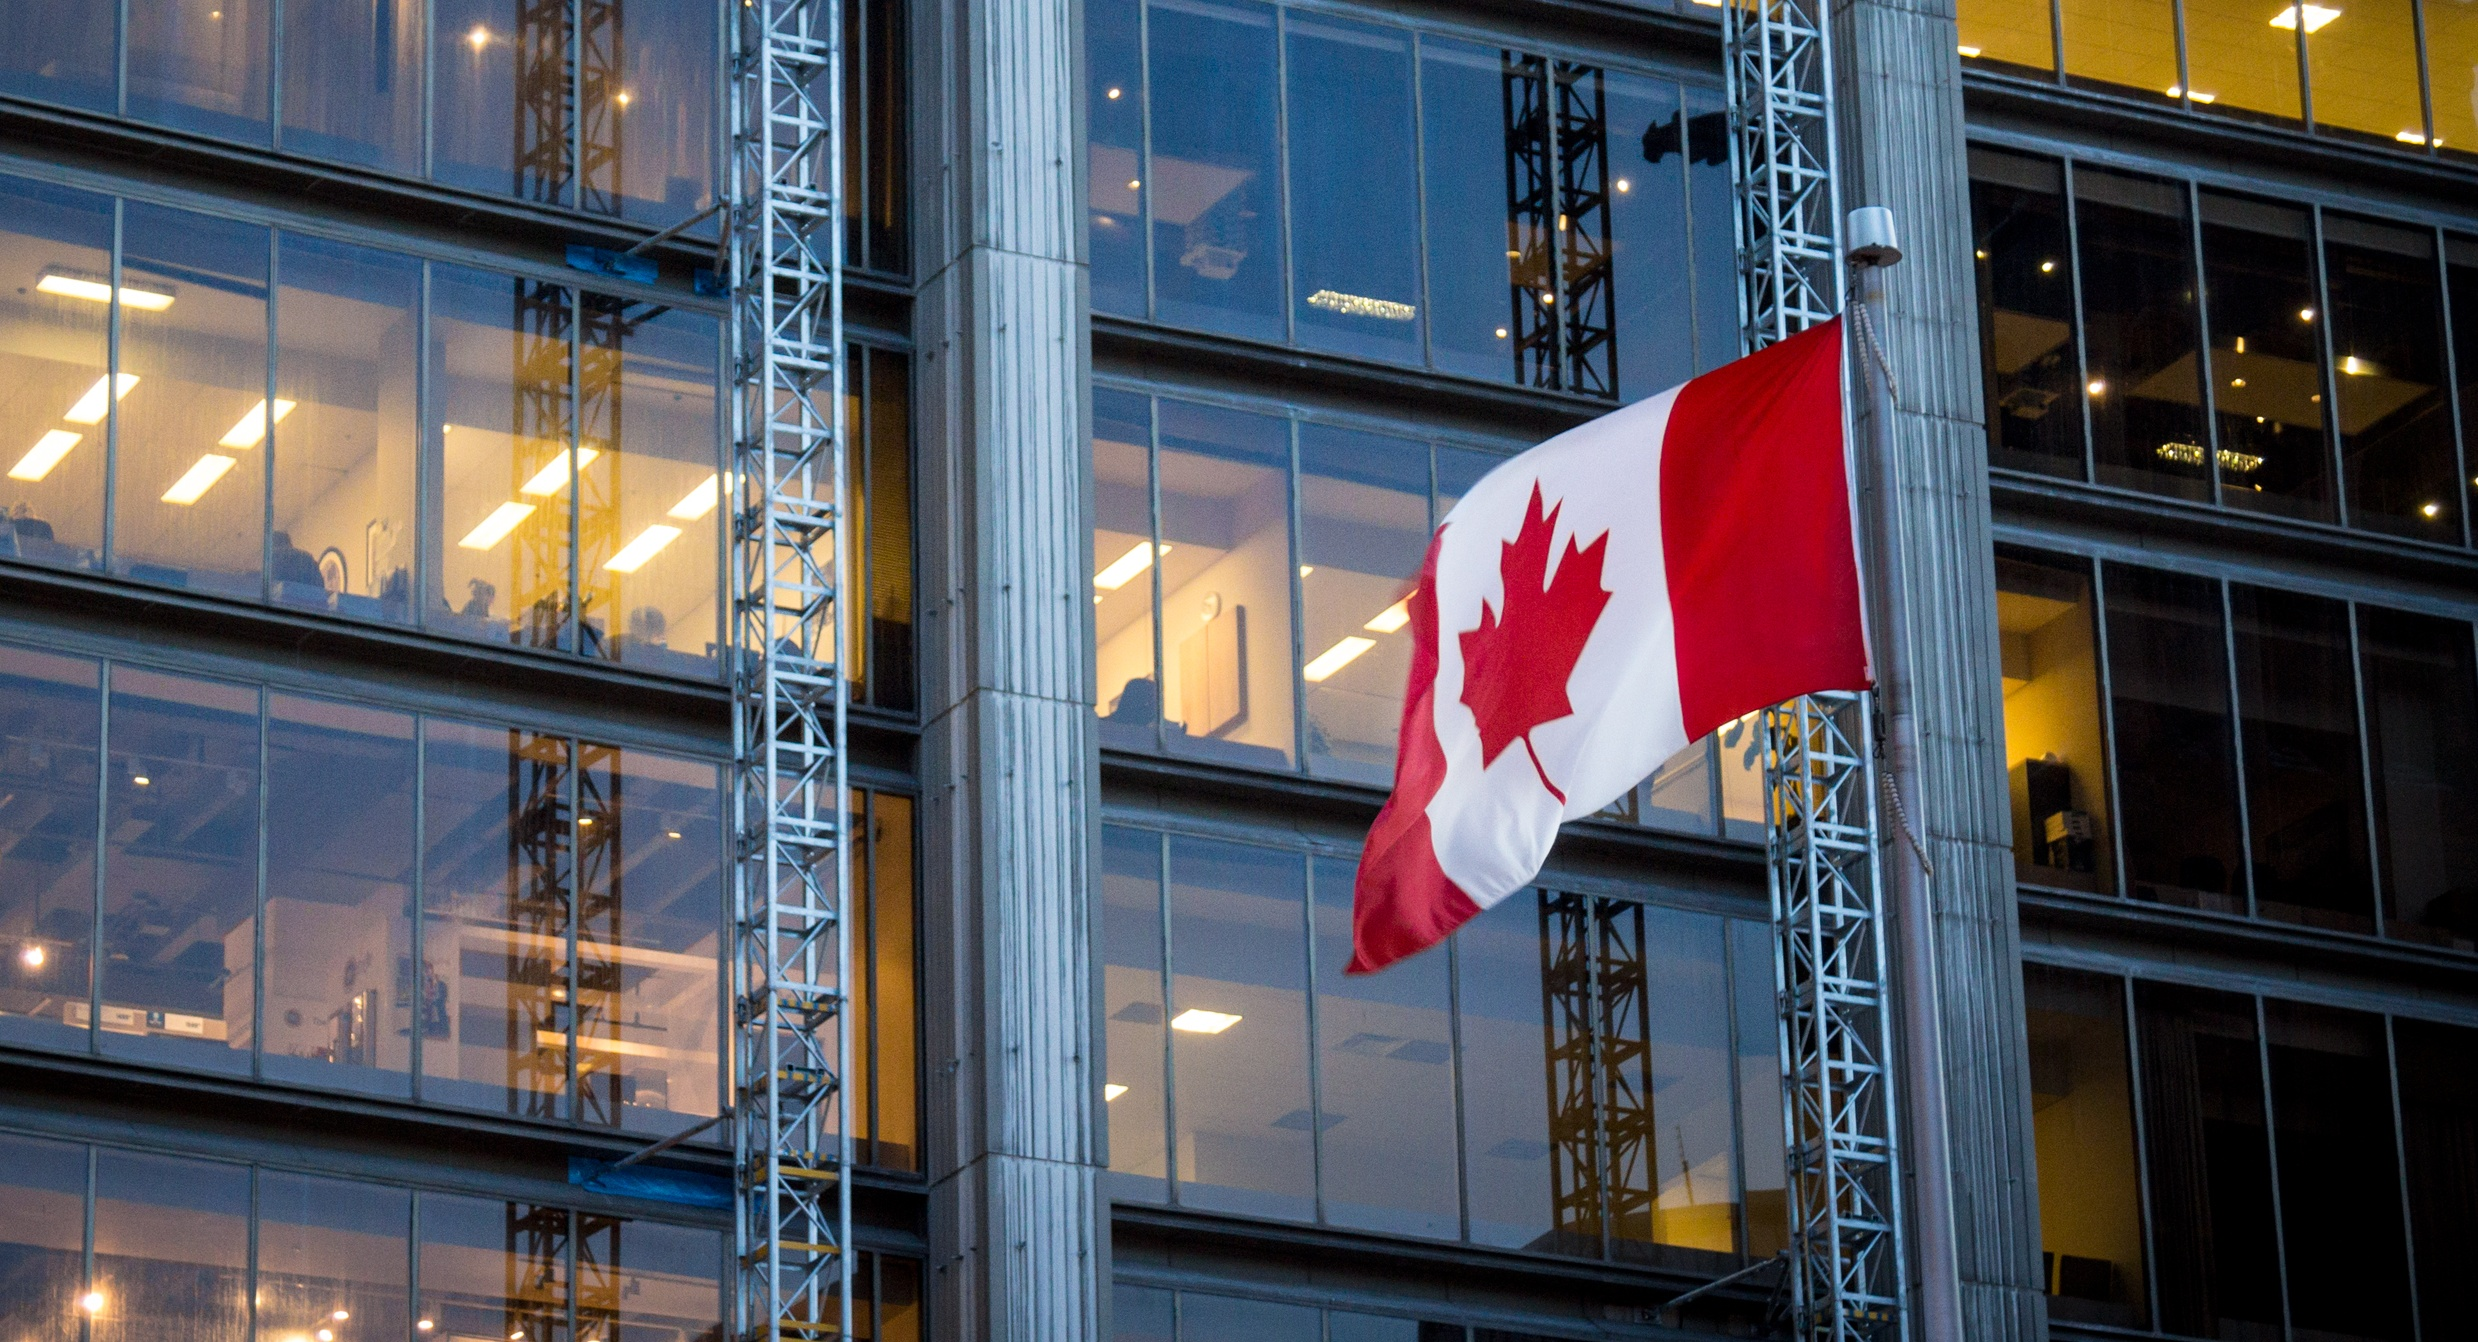 Why Canada is looking interesting for investments?